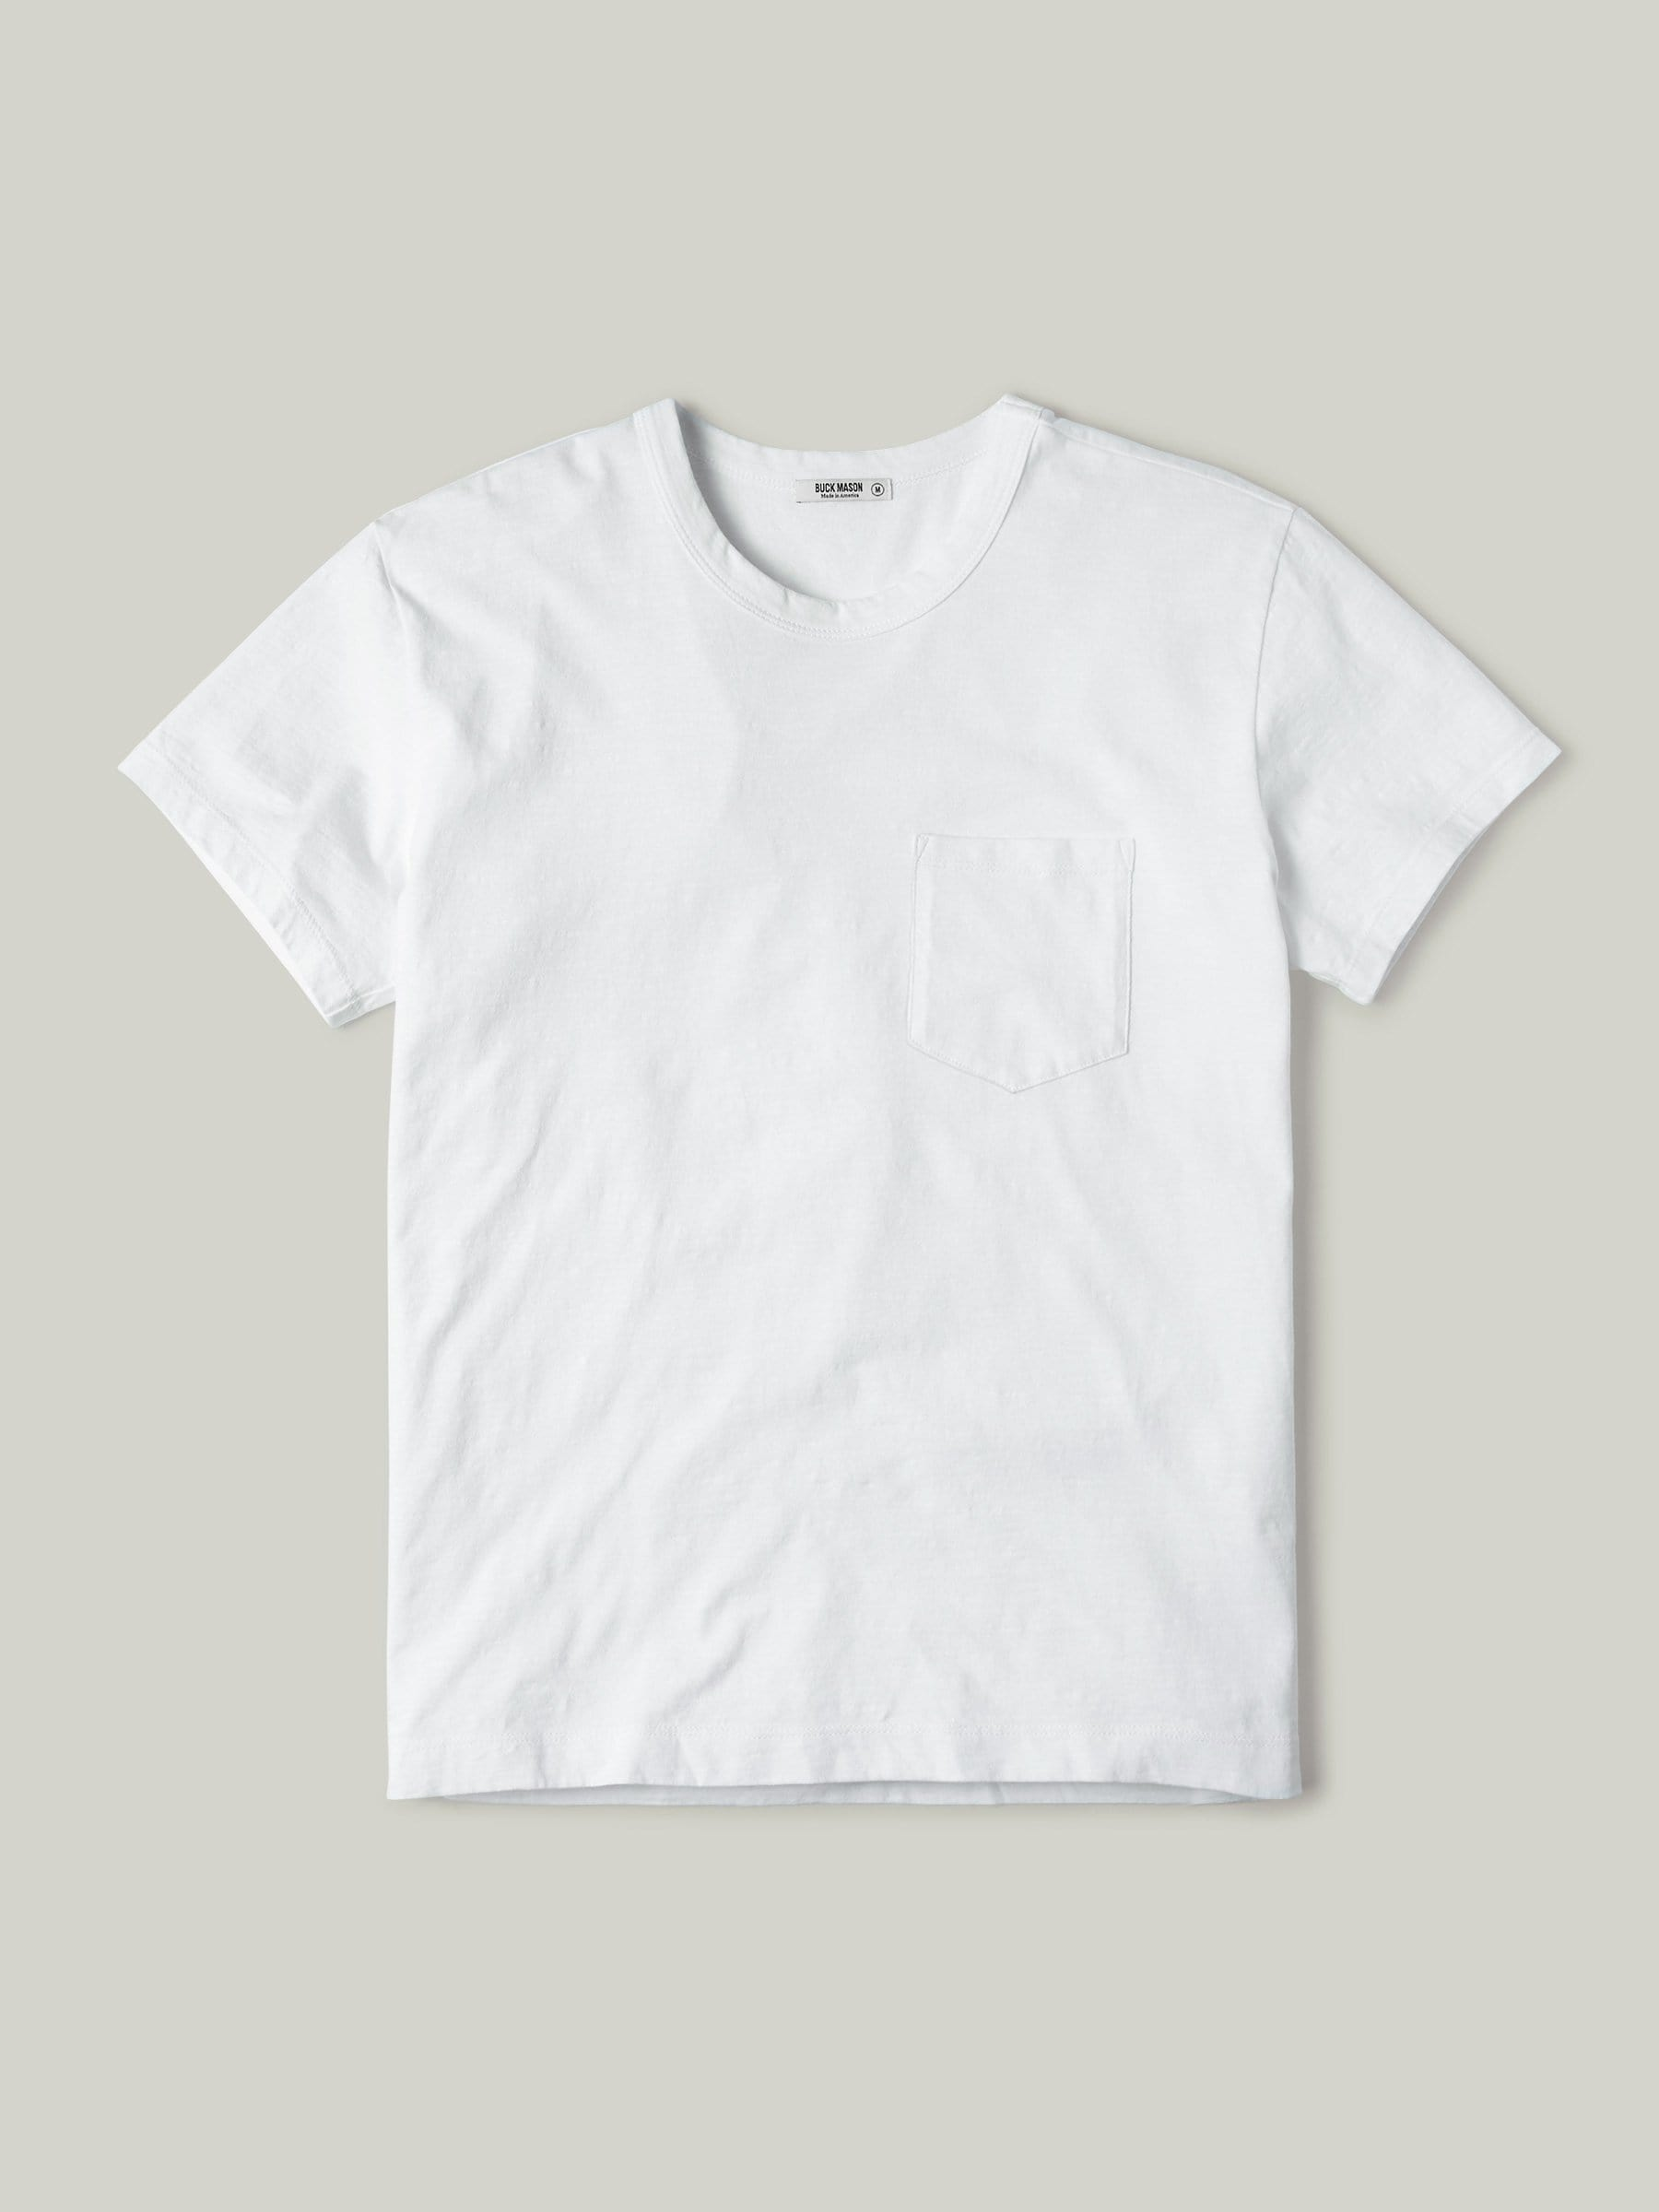 Best men's white T-shirts